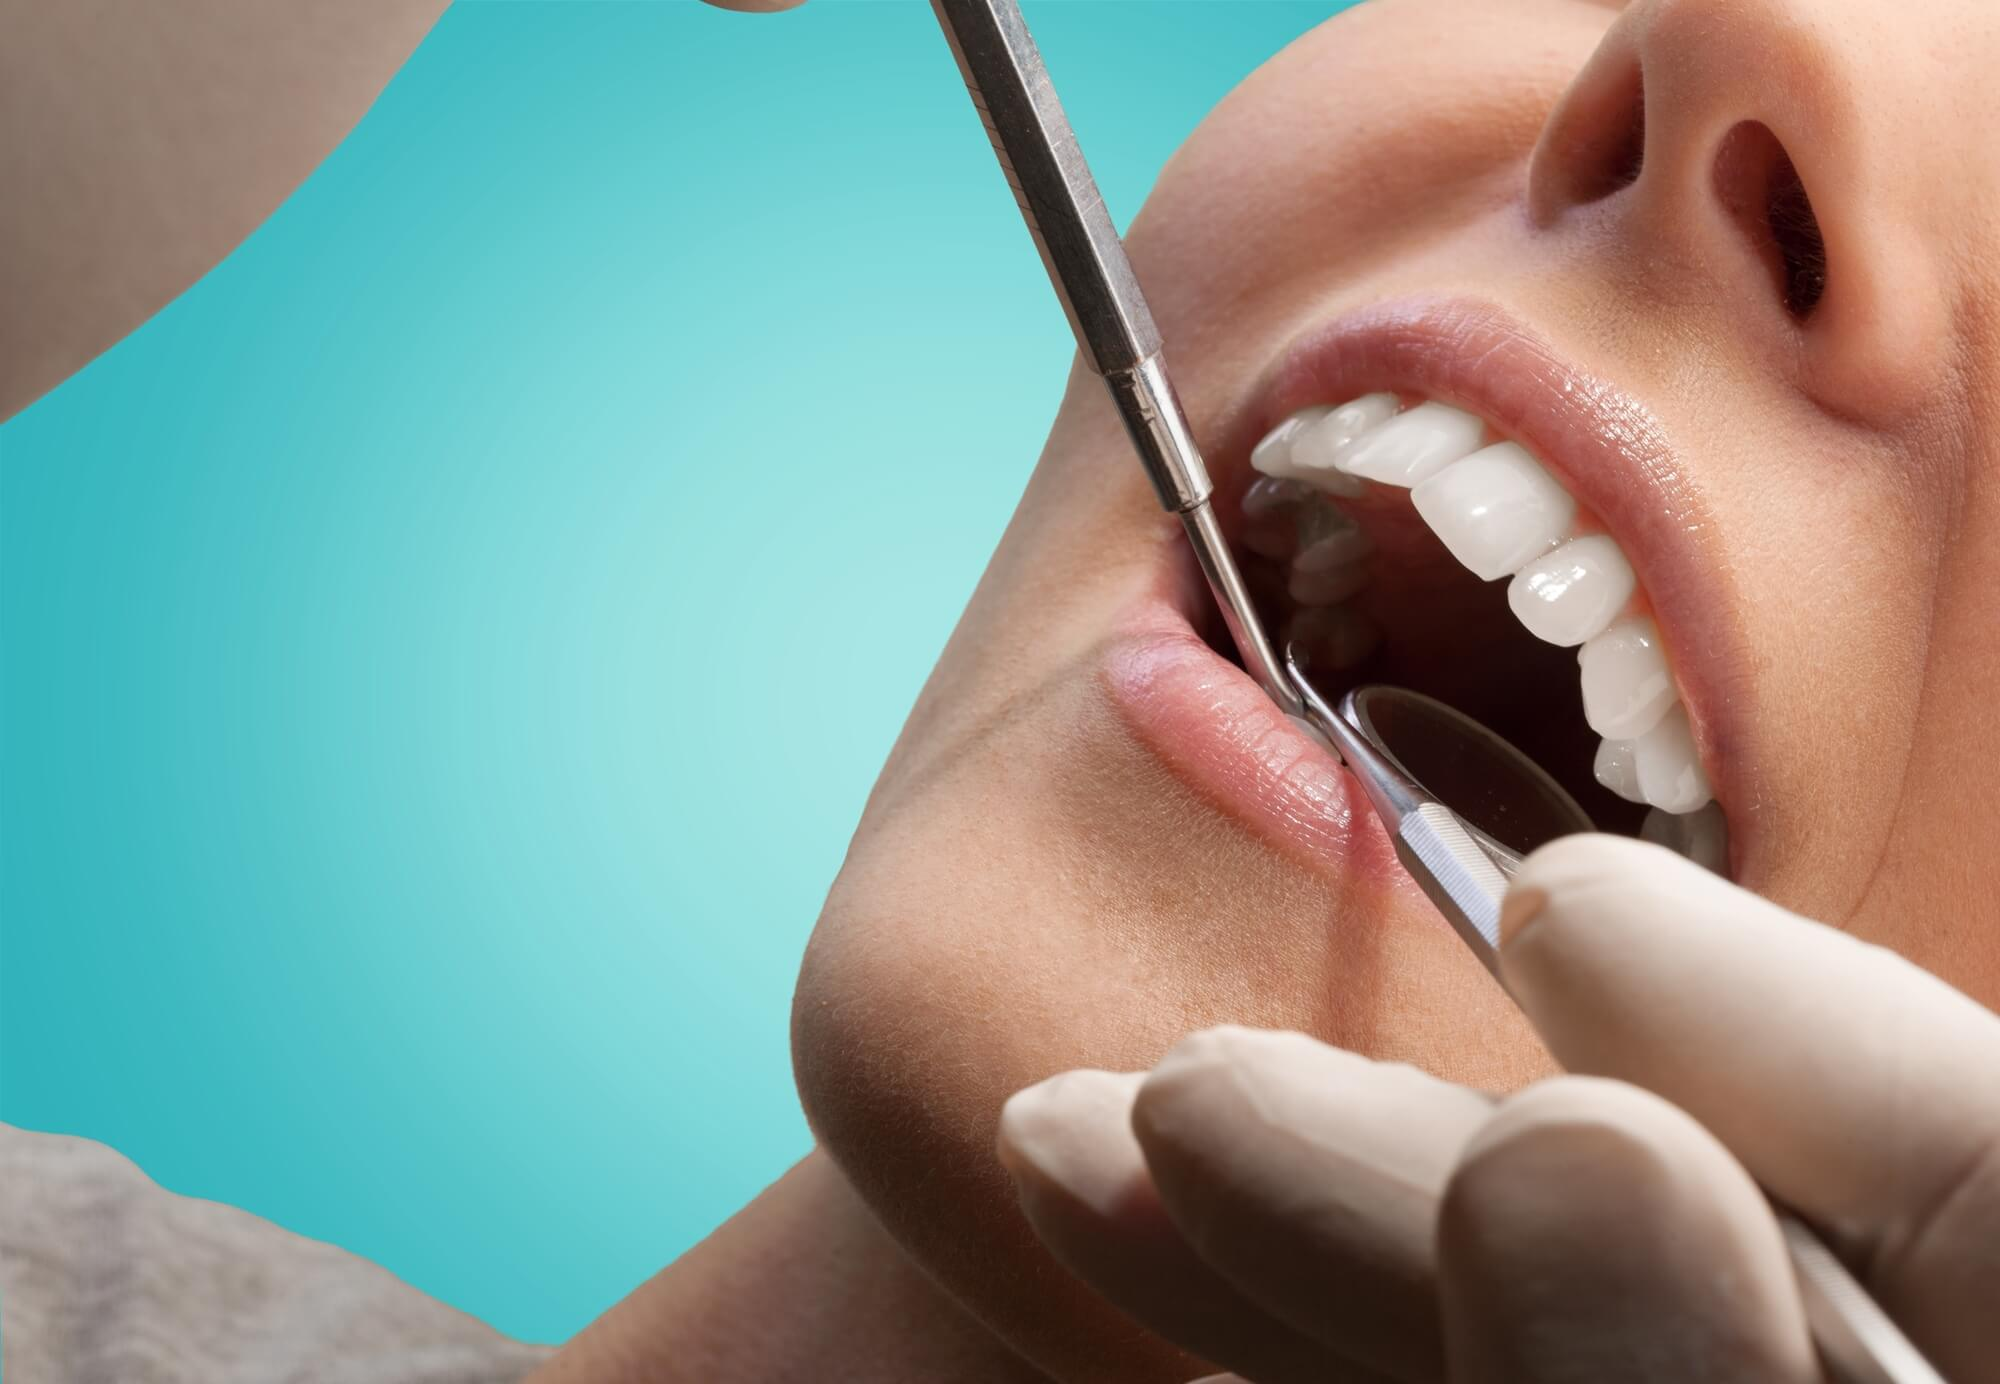 dentist checking mouth